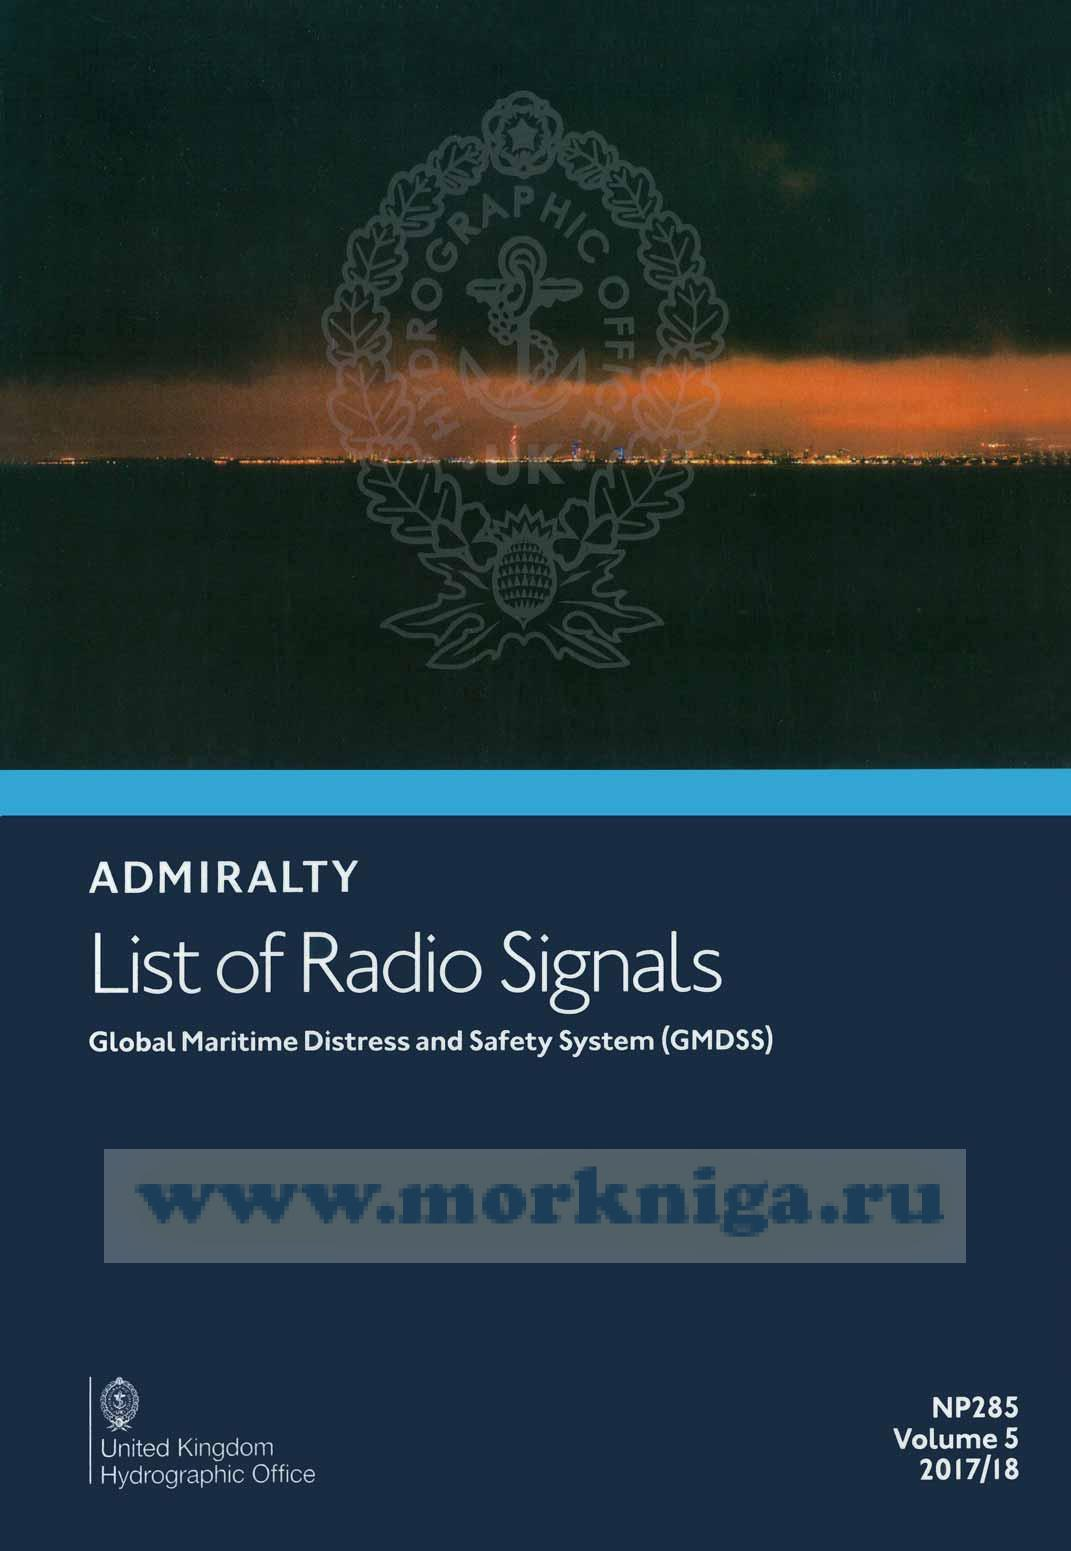 Admiralty list of radio signals. Vol 5 NP285 (ALRS). Global maritime distress and safety system (GMDSS). 2017/2018